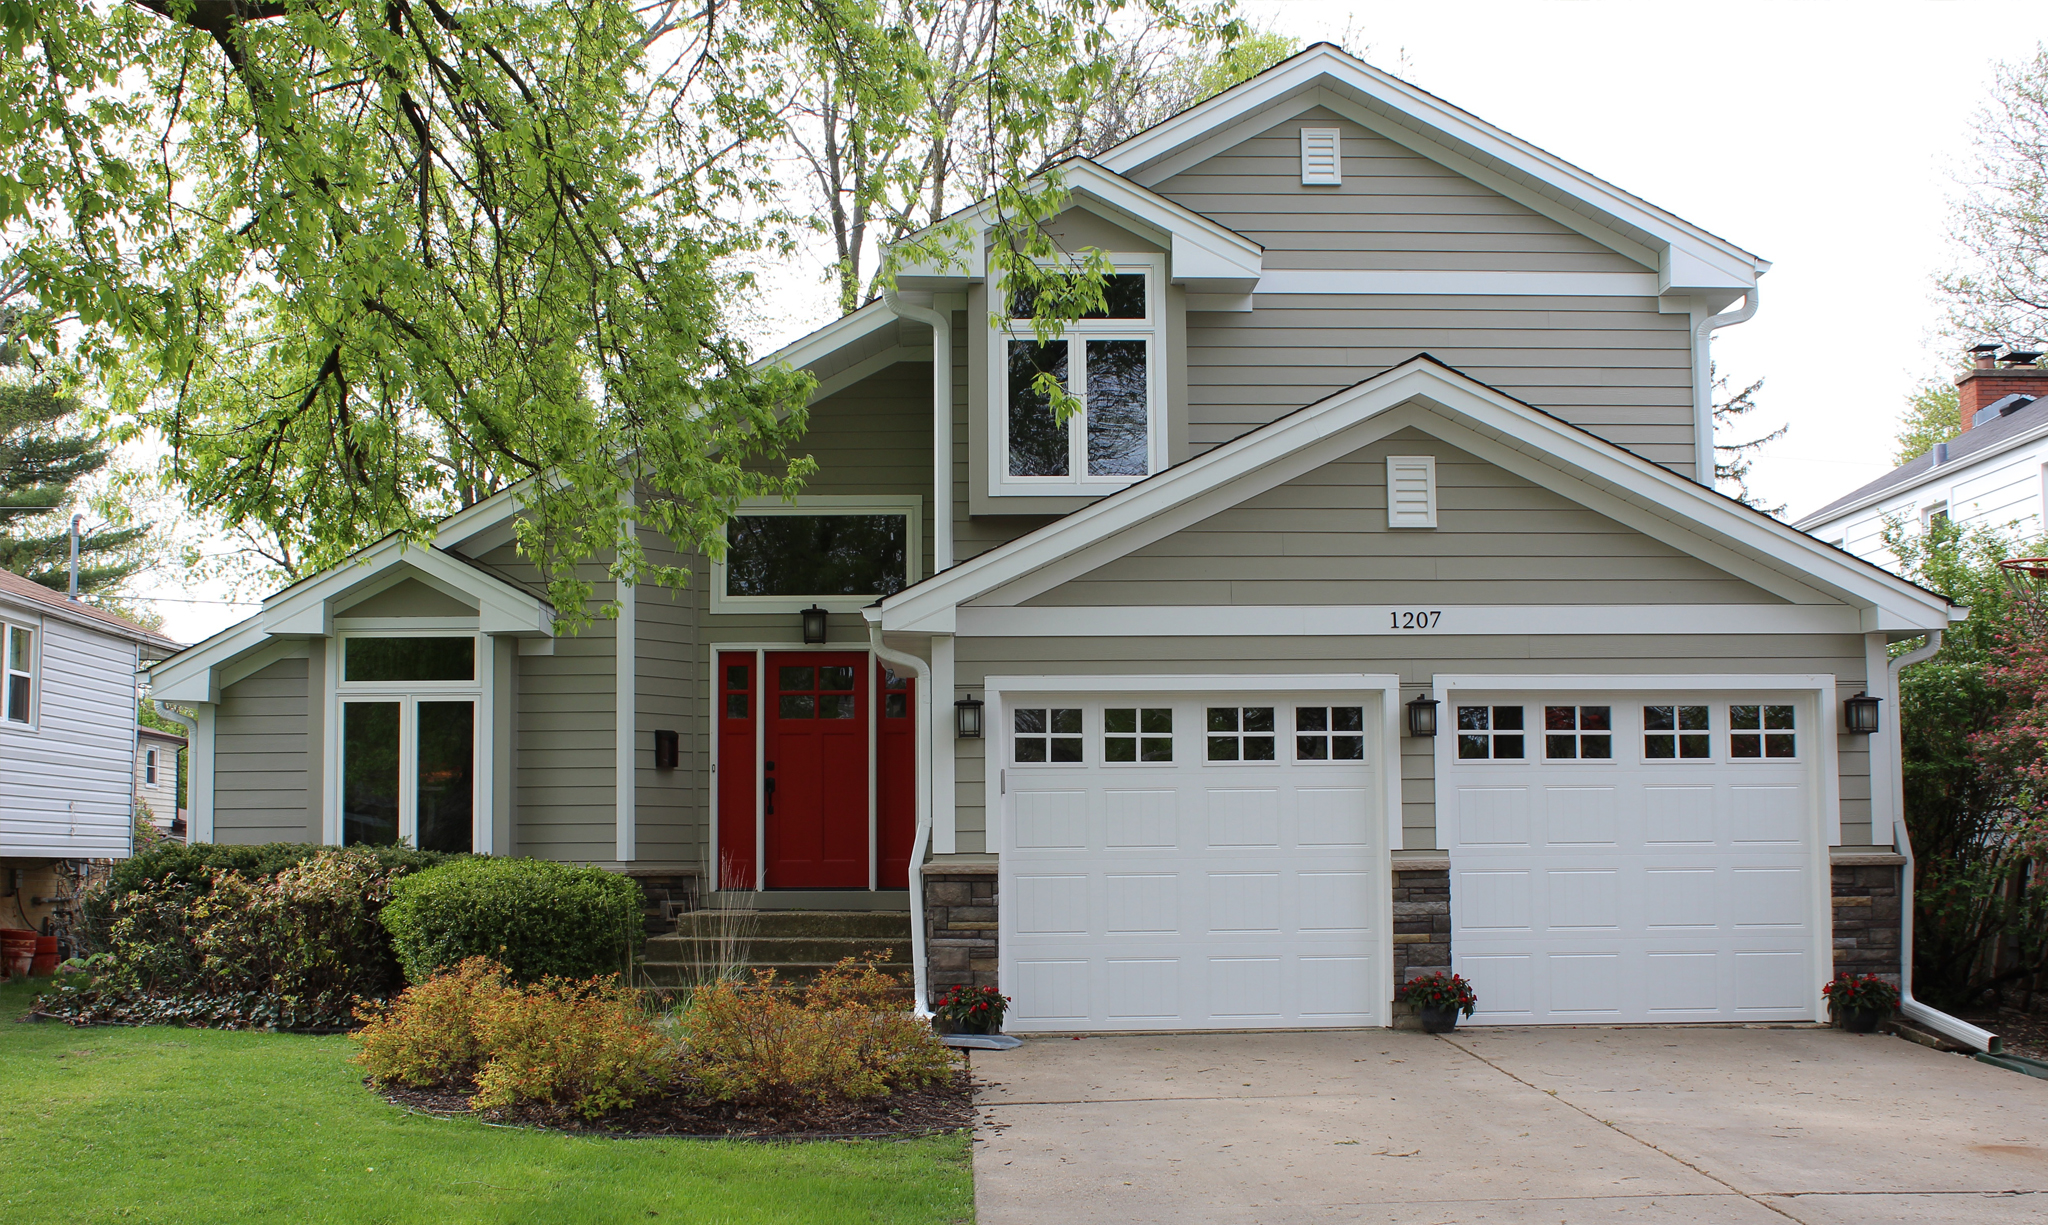 And To Tie Everything Together, A Therma Tru Red Door Provides That Great  Pop Of Color.